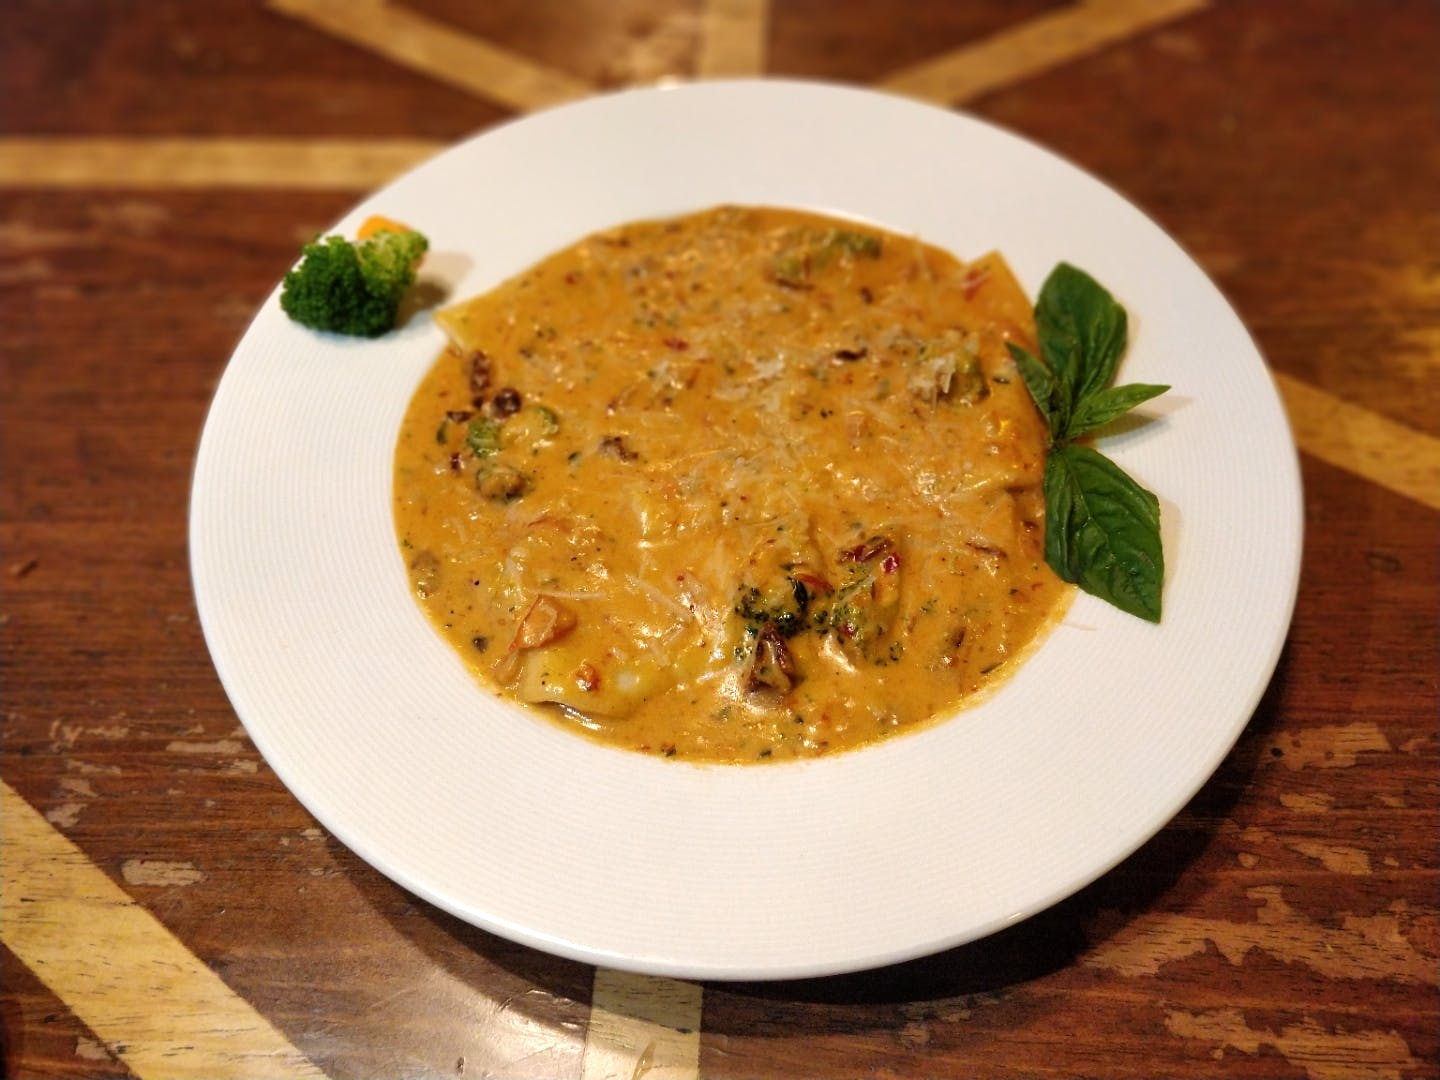 Dish,Food,Cuisine,Ingredient,Produce,Risotto,Curry,Recipe,Khichdi,Meat